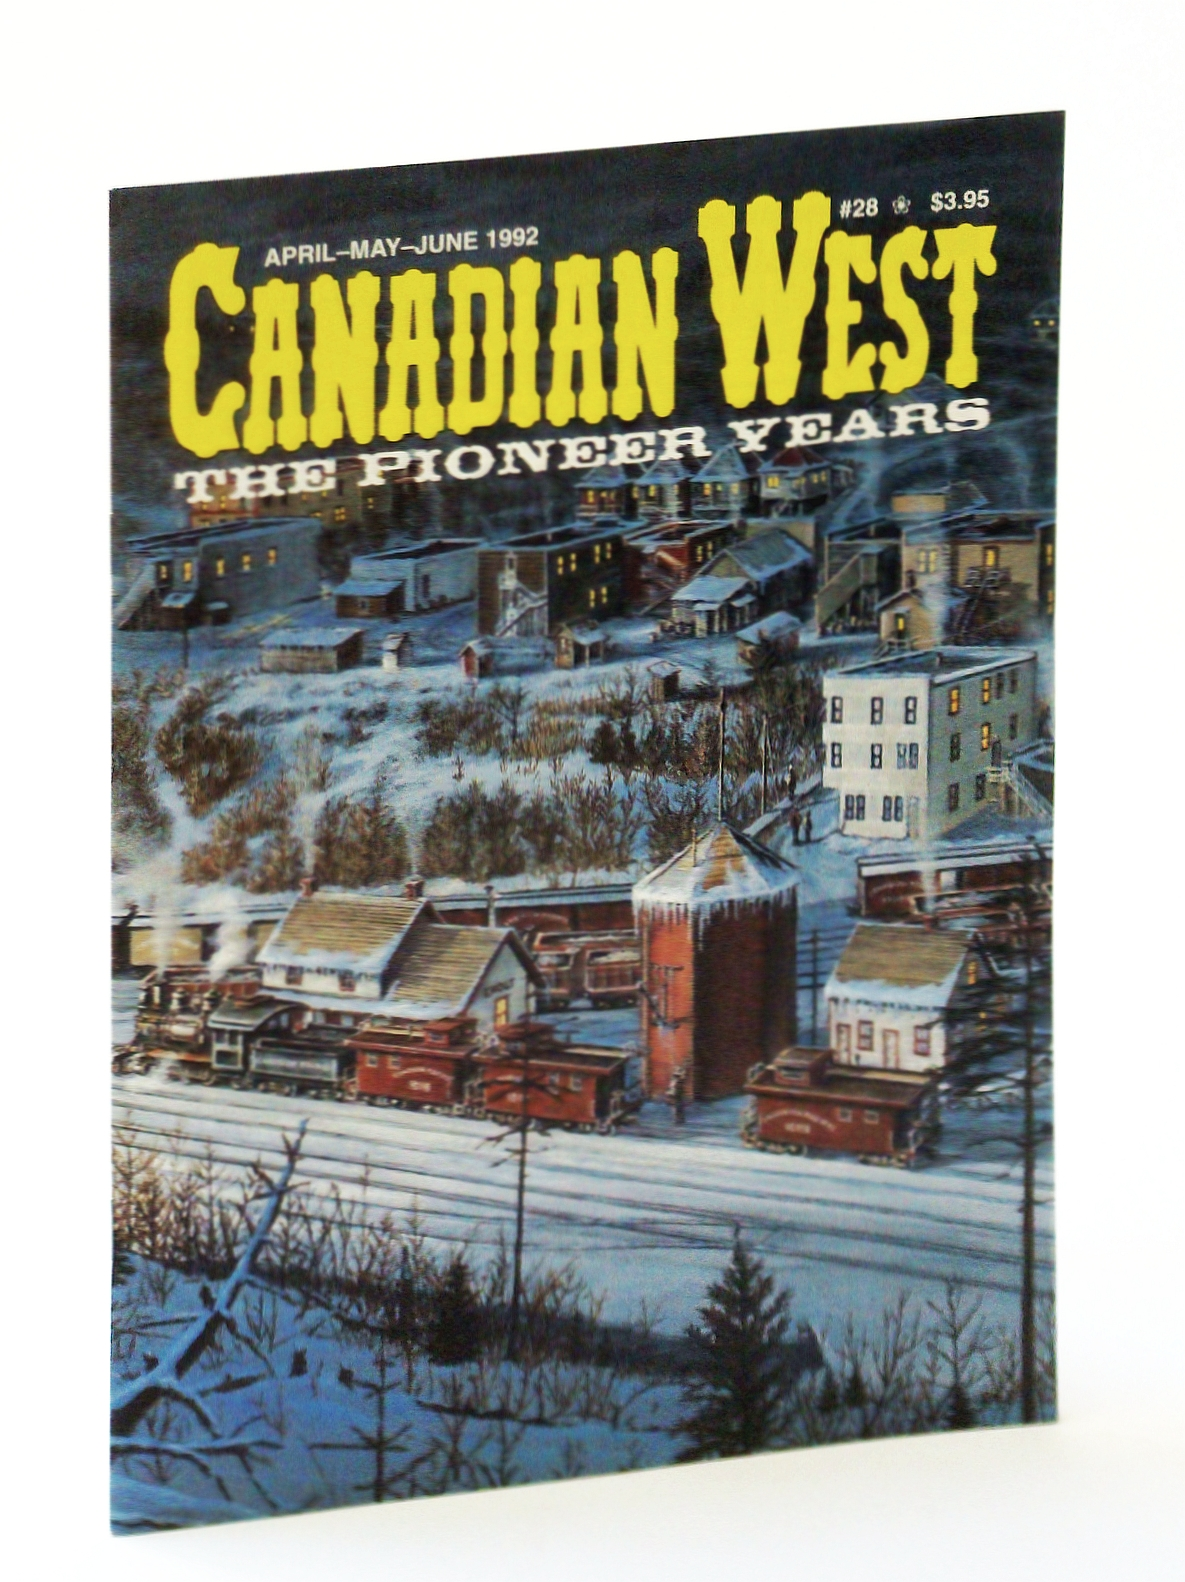 Image for Canadian West Magazine - The Pioneer Years: April (Apr.)/May/June 1992,  Vol. 8, No. 2 (Collector's #28)